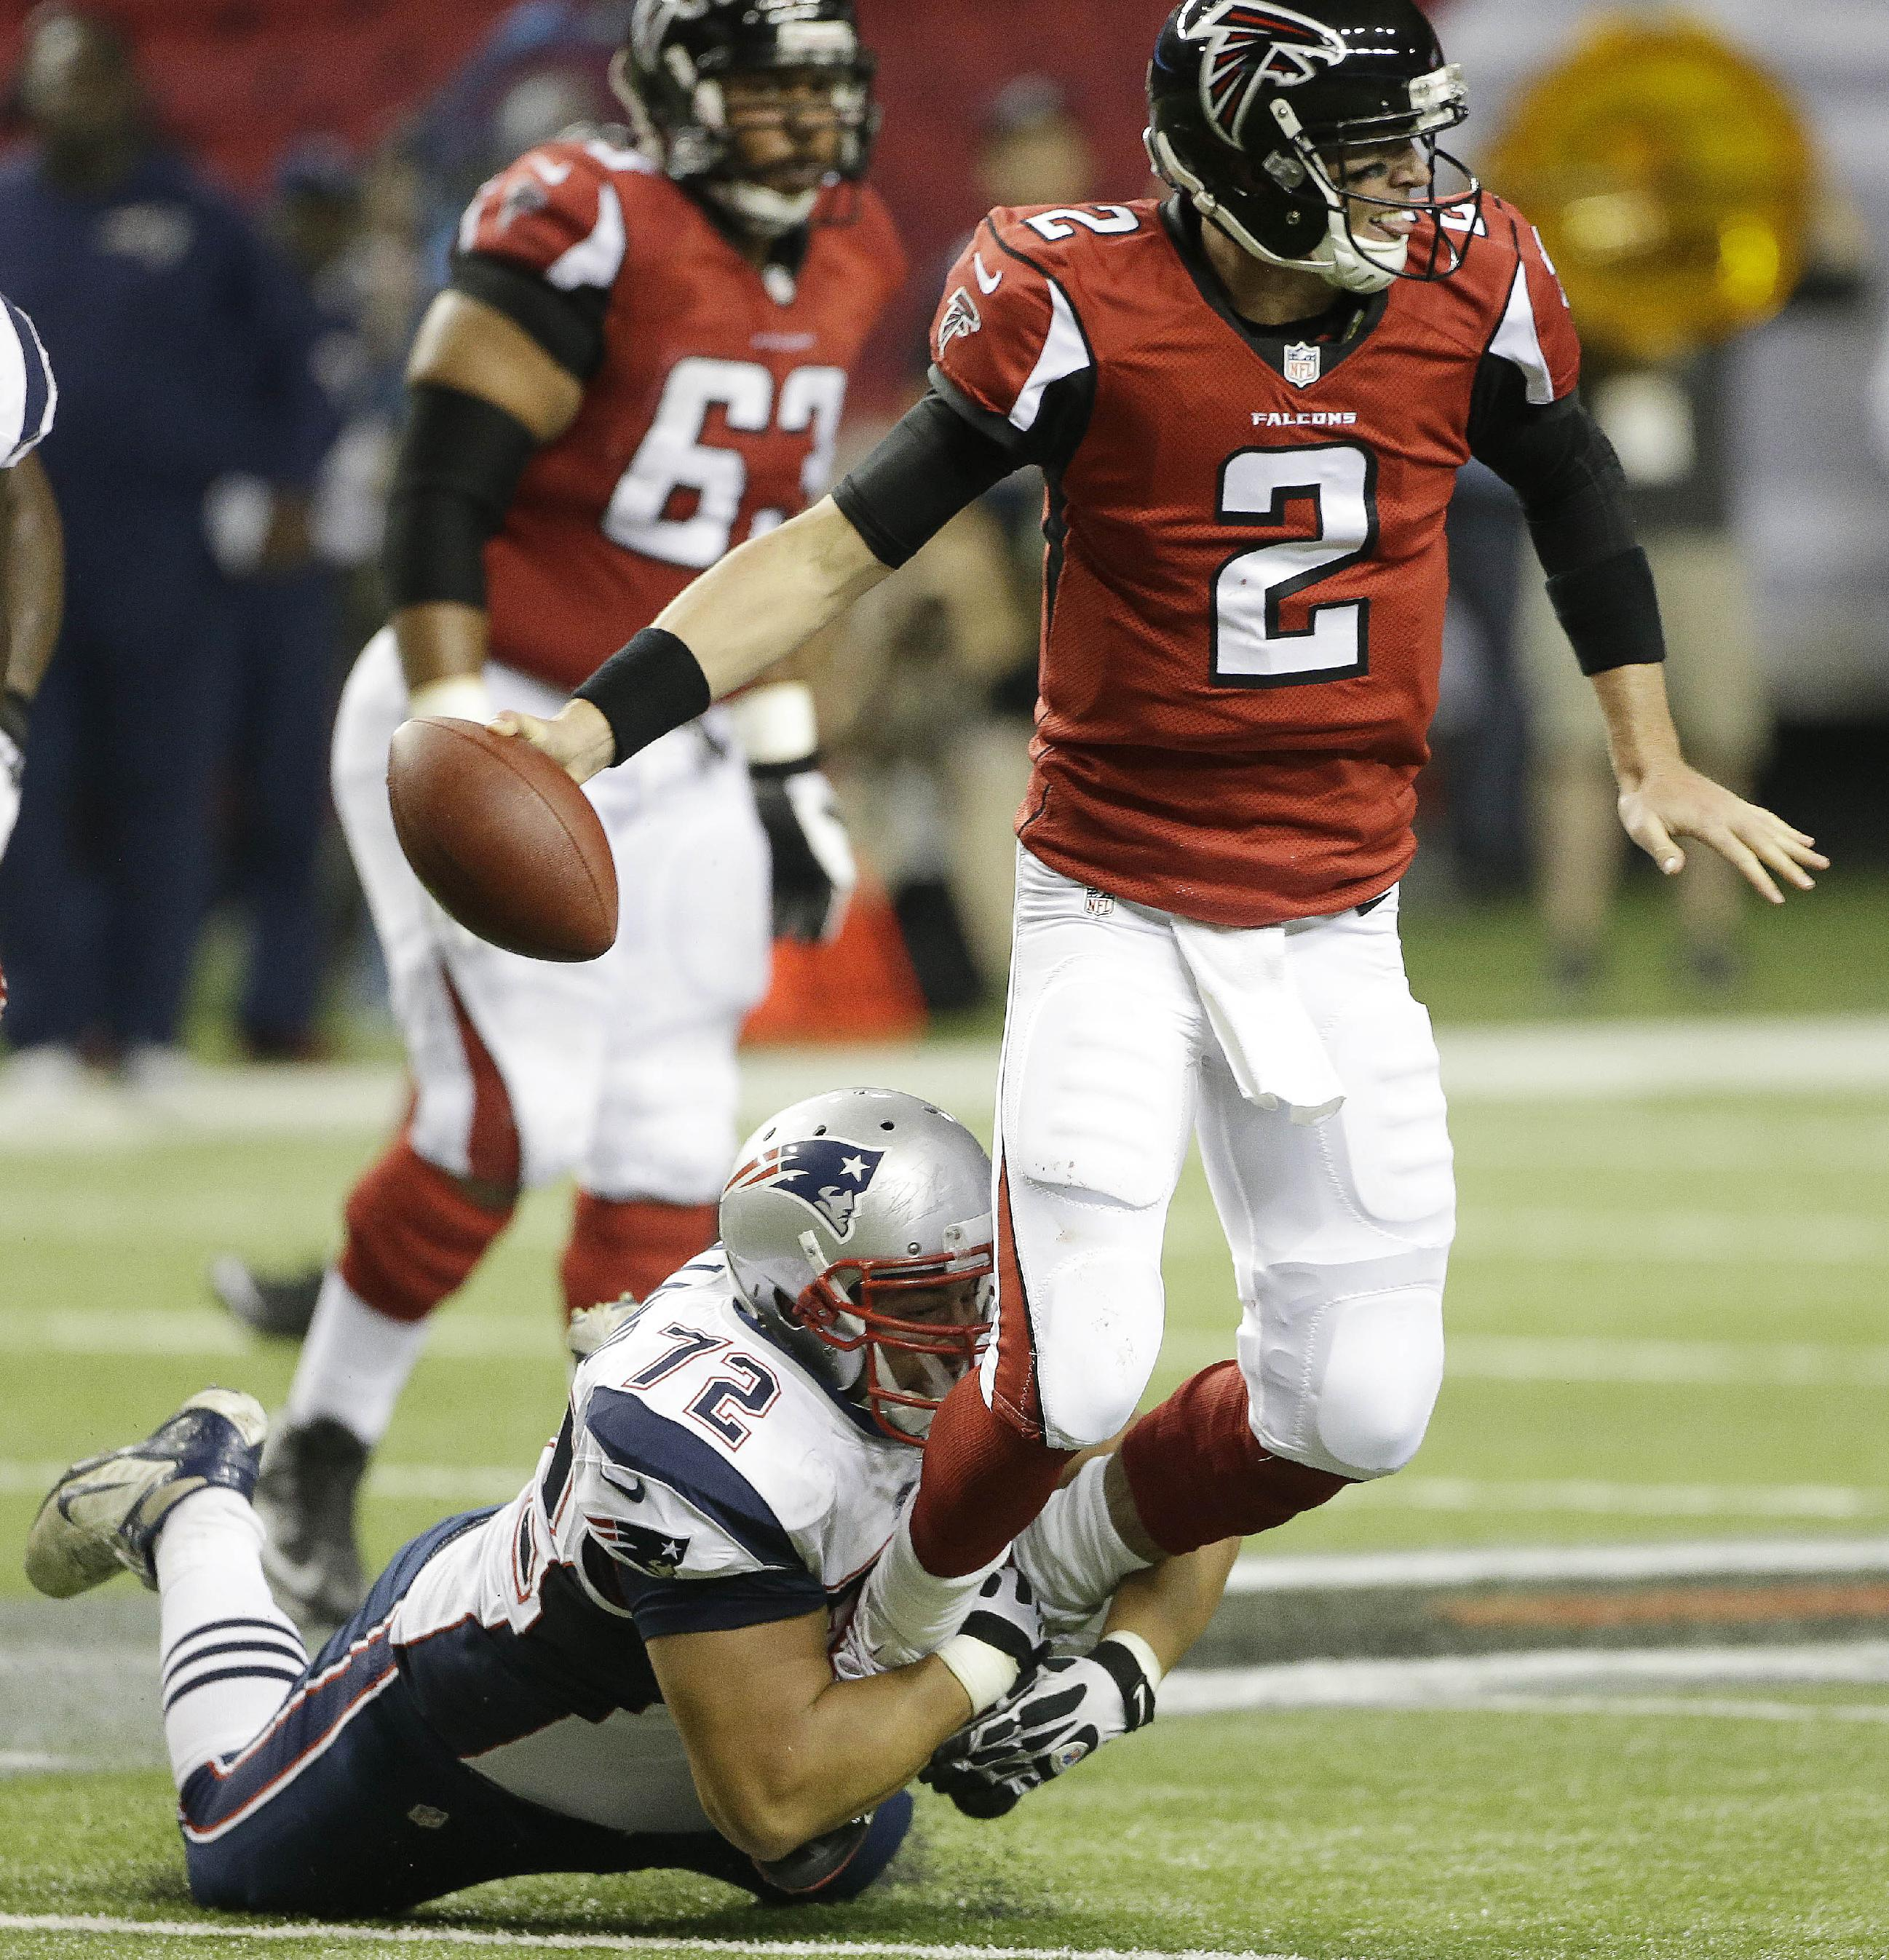 Falcons to focus on themselves after 1-3 start